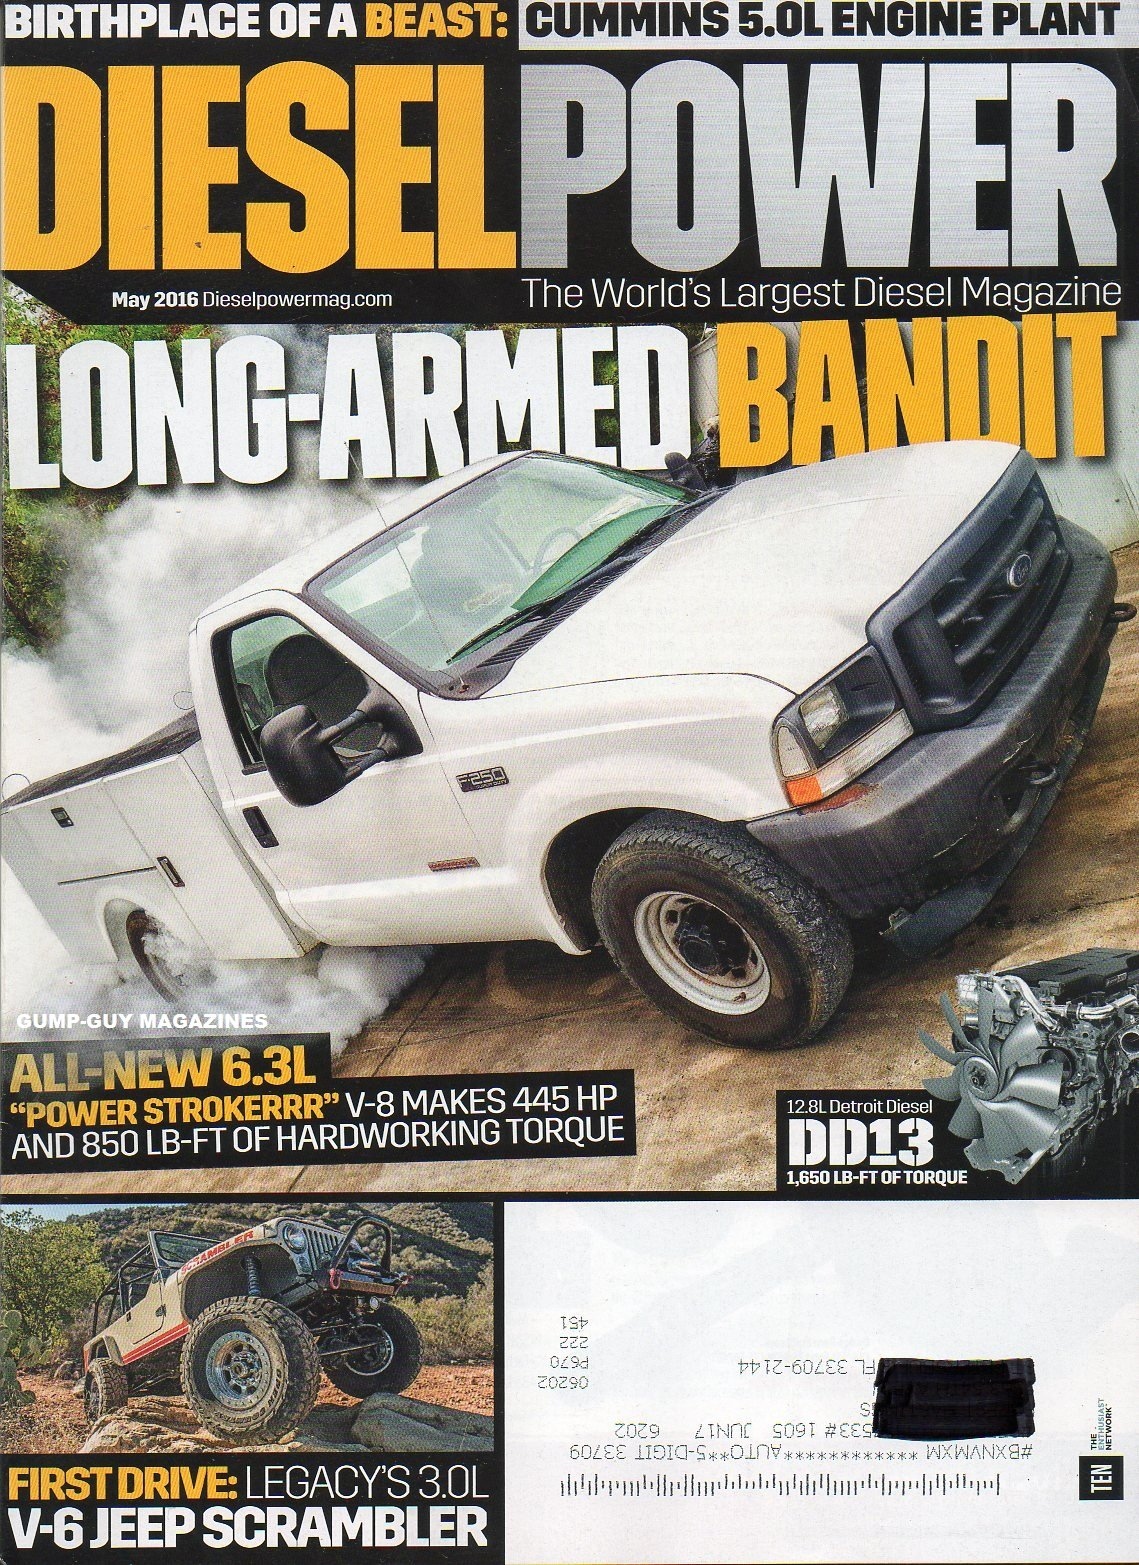 Diesel Power May 2016 The World's Largest Diesel Magazine BIRTHPLACE OF A BEAST: CUMMINS 5.0L ENGINE PLANT Long-Armed Bandit pdf